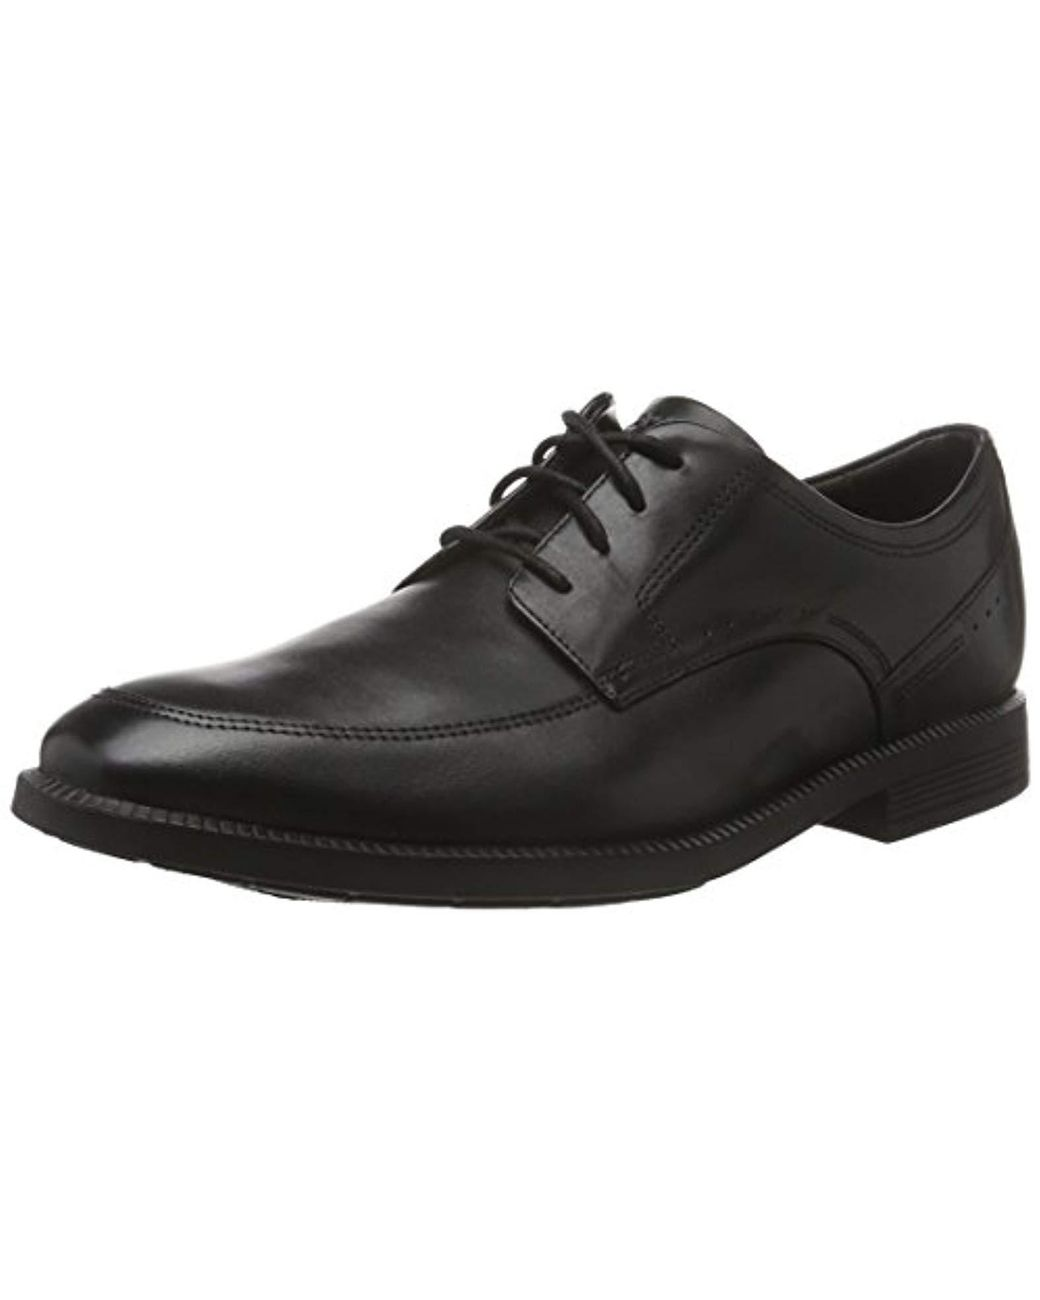 06868211418 Rockport 's Dressports Modern Apron Toe Oxfords in Black for Men - Lyst